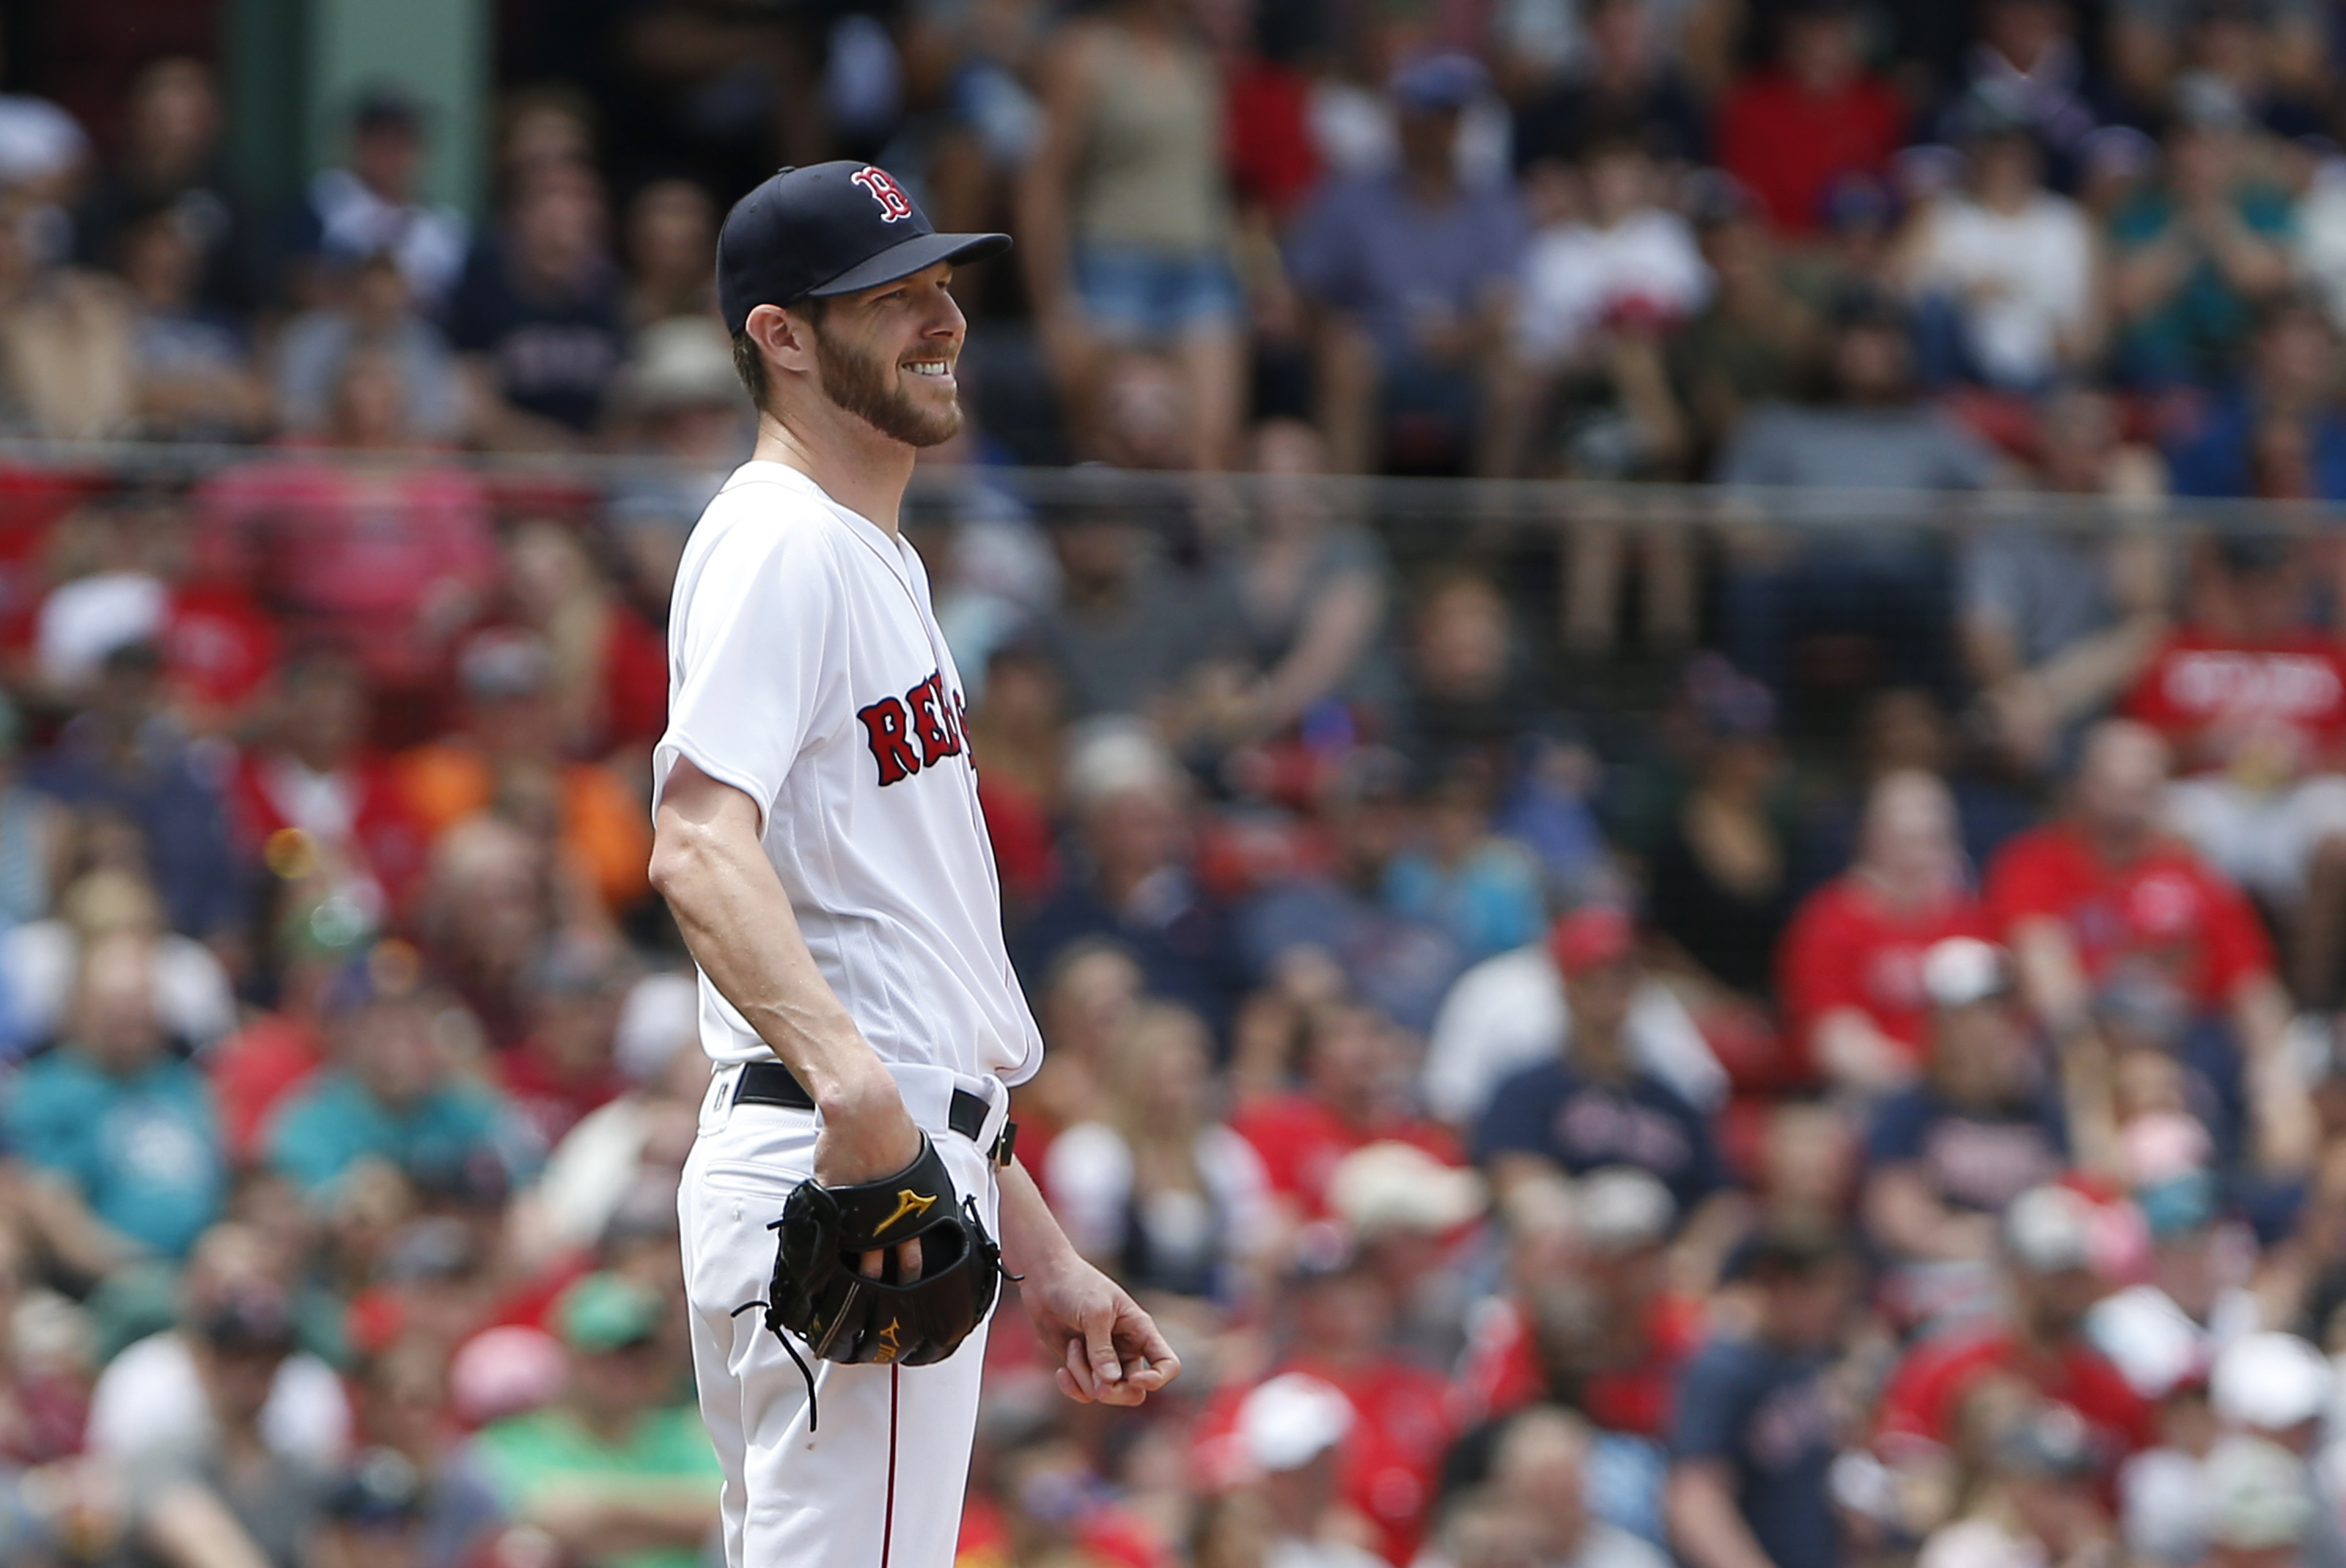 acad2468f Chris Sale comfortable with Red Sox — and it shows - The Boston Globe